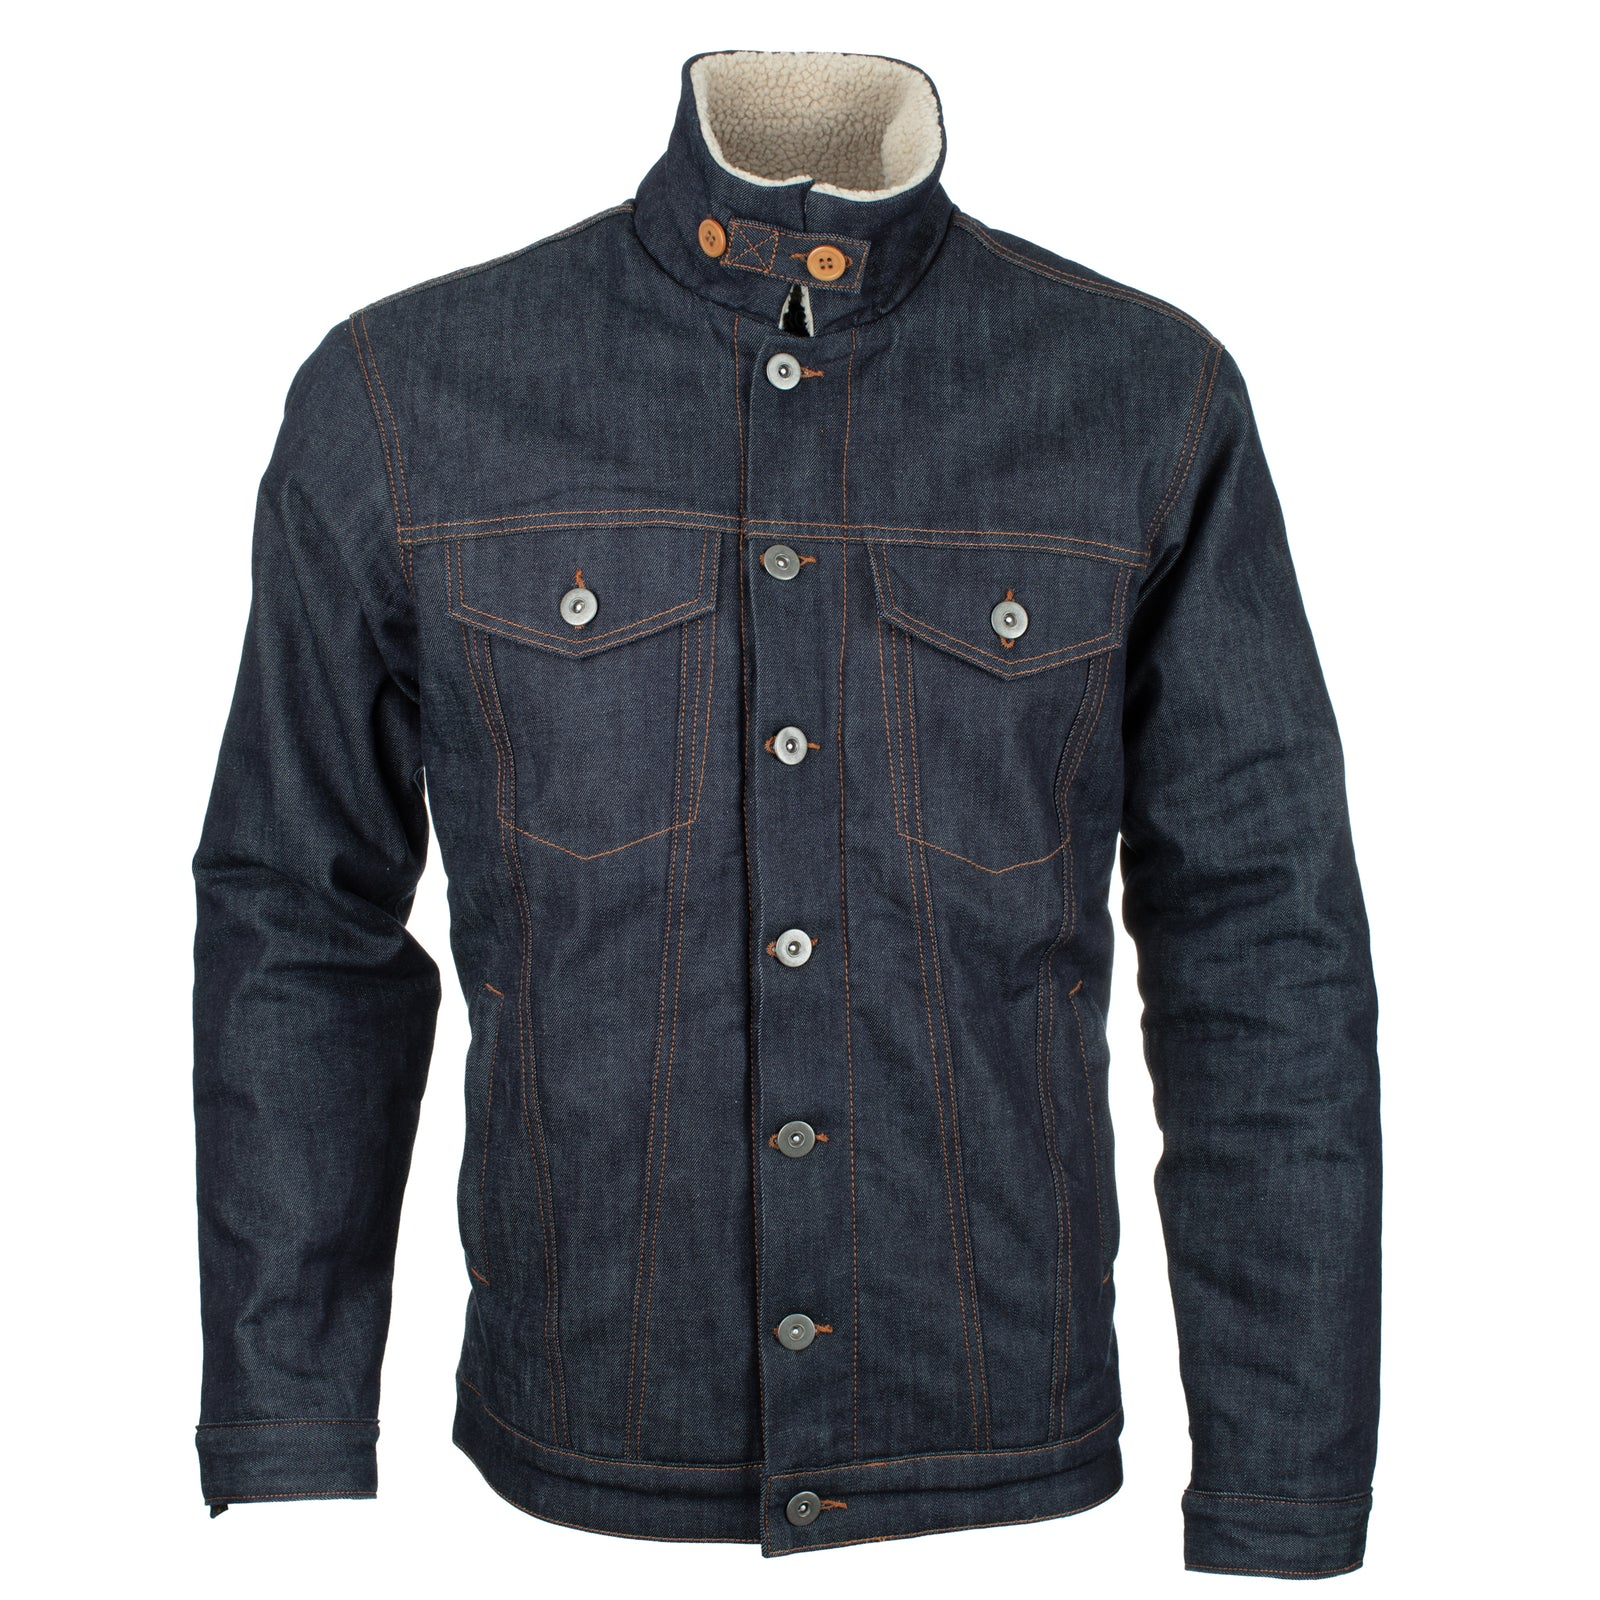 Resurgence Gear PEKEV Sherpa Selvedge Denim Jacket for men